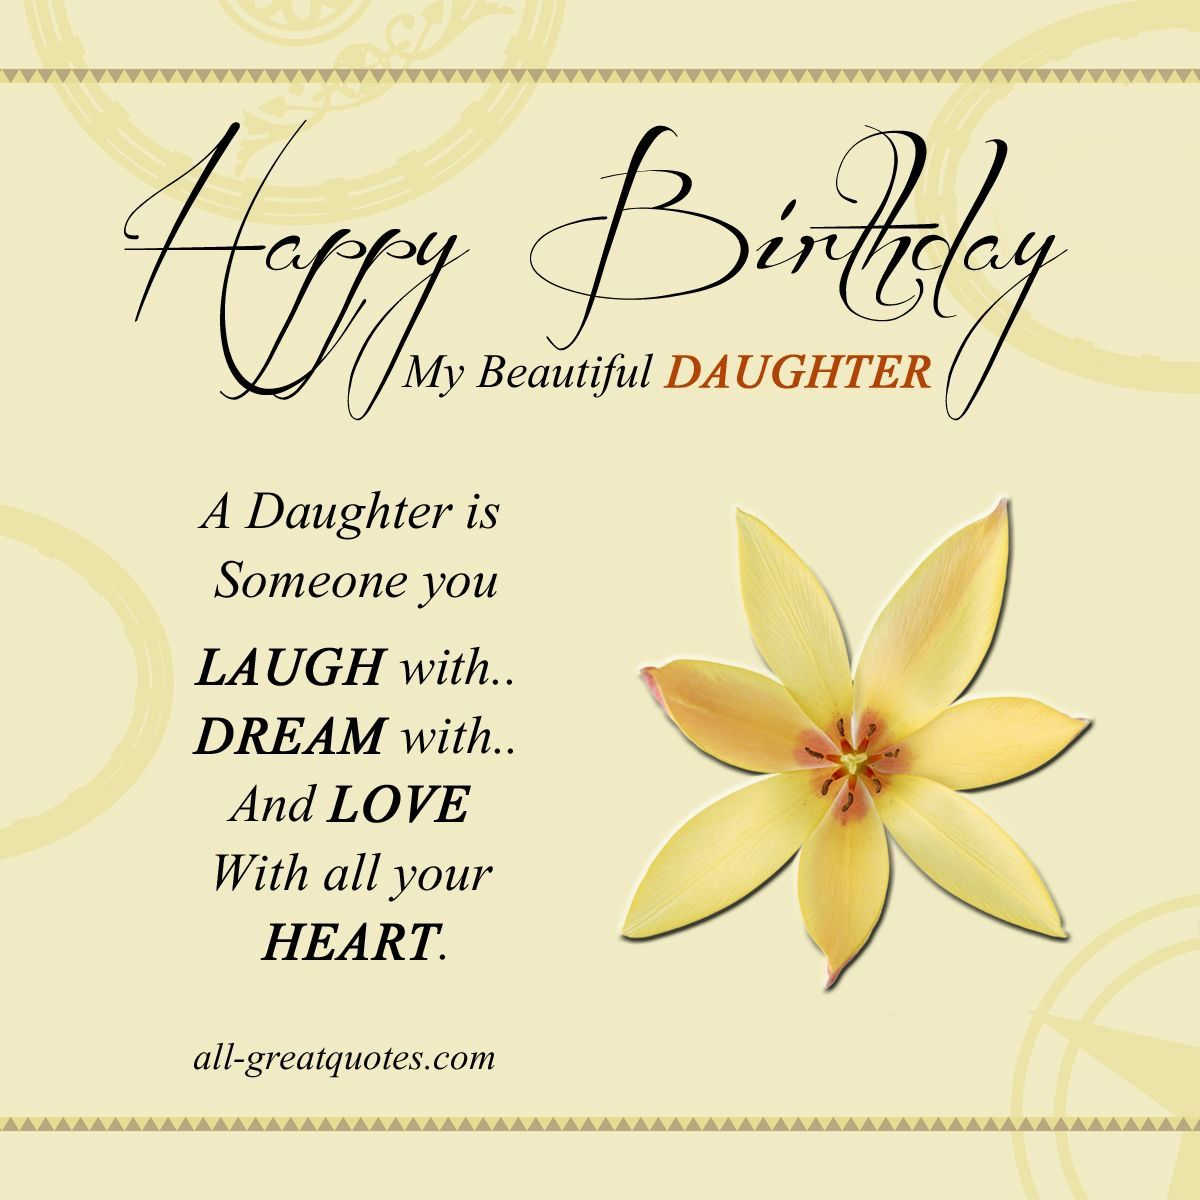 Mother Daughter Birthday Wishes For Daughter Birthday Greetings For Daughter Birthday Quotes For Daughter